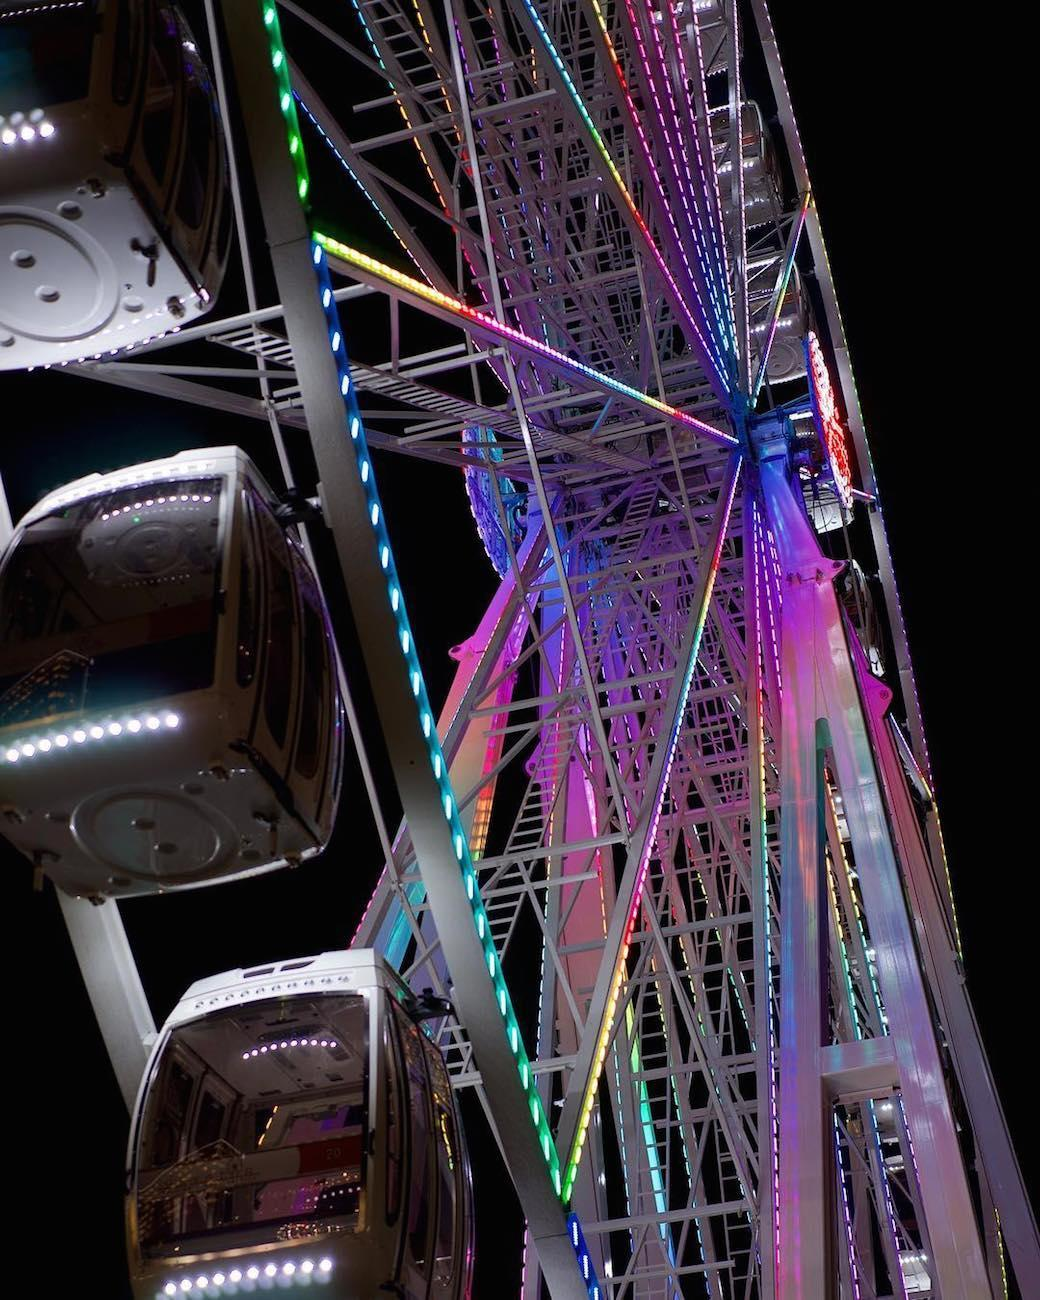 The SkyStar is the largest traveling observation wheel in the country. Guests are carried in gondolas up almost 15 stories high while overlooking the Ohio River. The 36 carriers are climate-controlled and can hold up to six people. The magnificent structure will only call The Banks its home through December 2nd before it's packed up and rolled to a new city. SkyStar runs daily, and tickets are $12.50. ADDRESS: 55 East Freedom Way (45202) / Image courtesy of Instagram user @gdawsonphotography // Published 9.12.18<br>